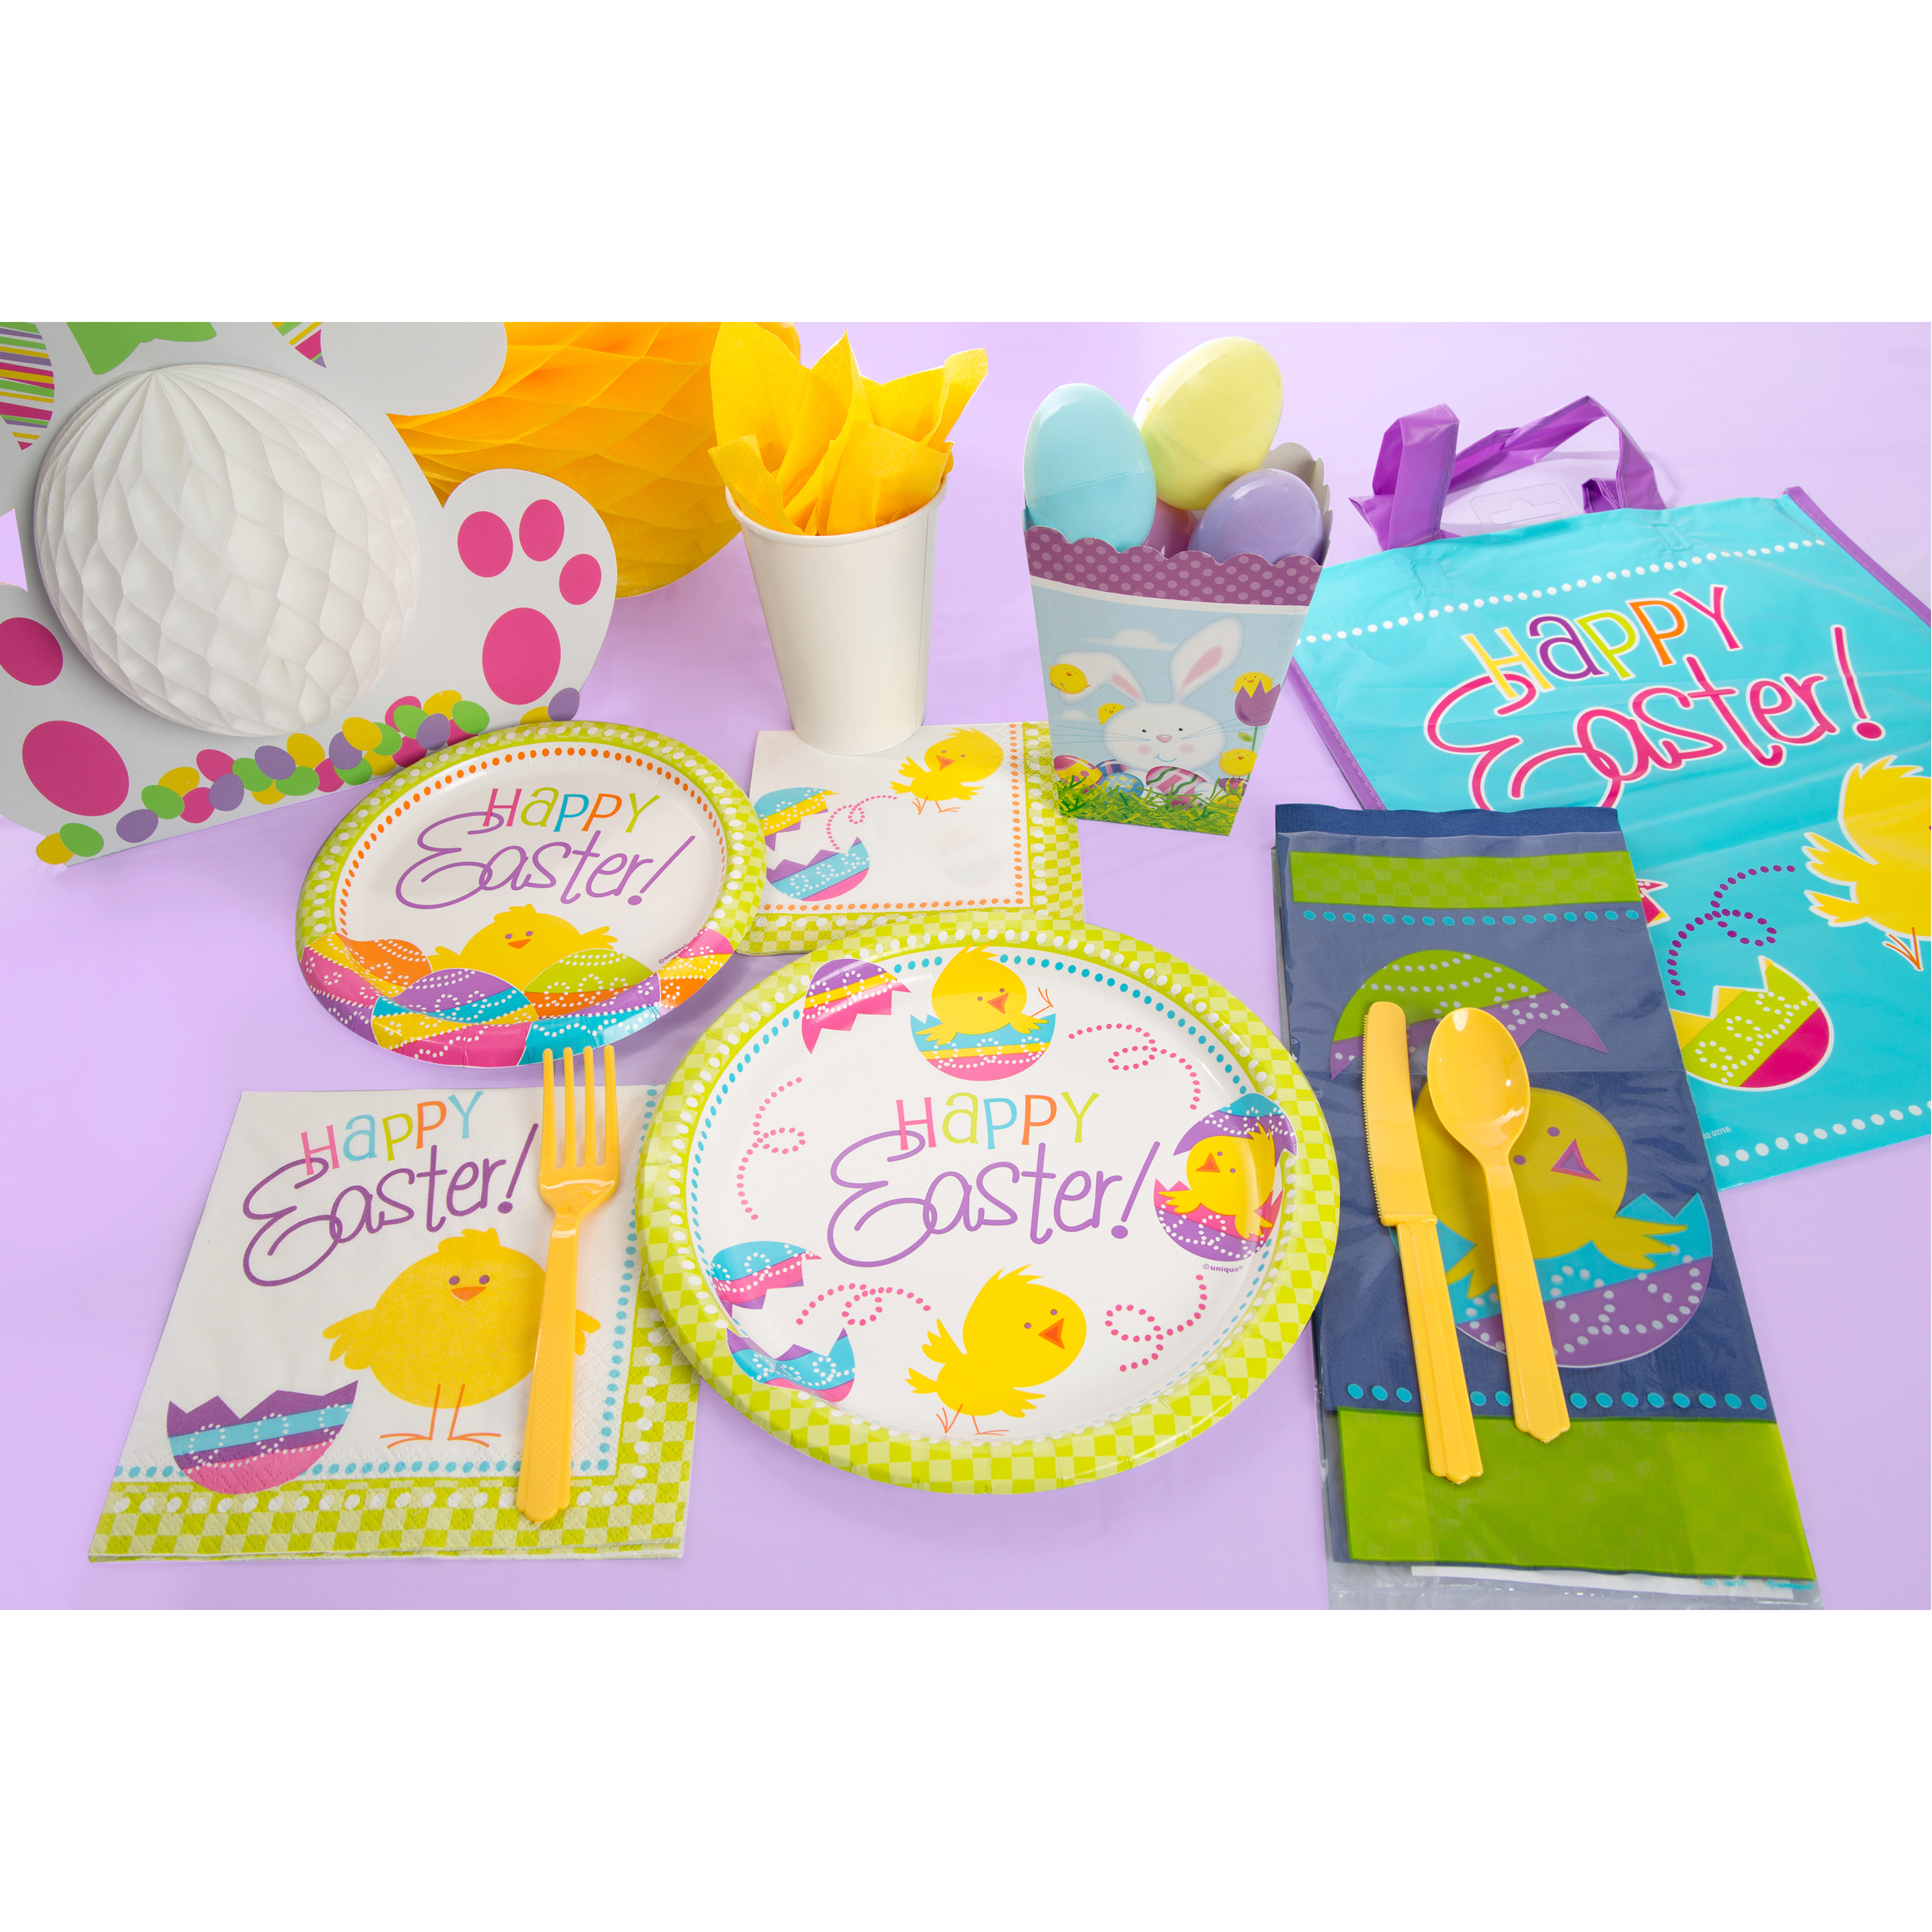 Easter Chick Party Supplies - Walmart.com